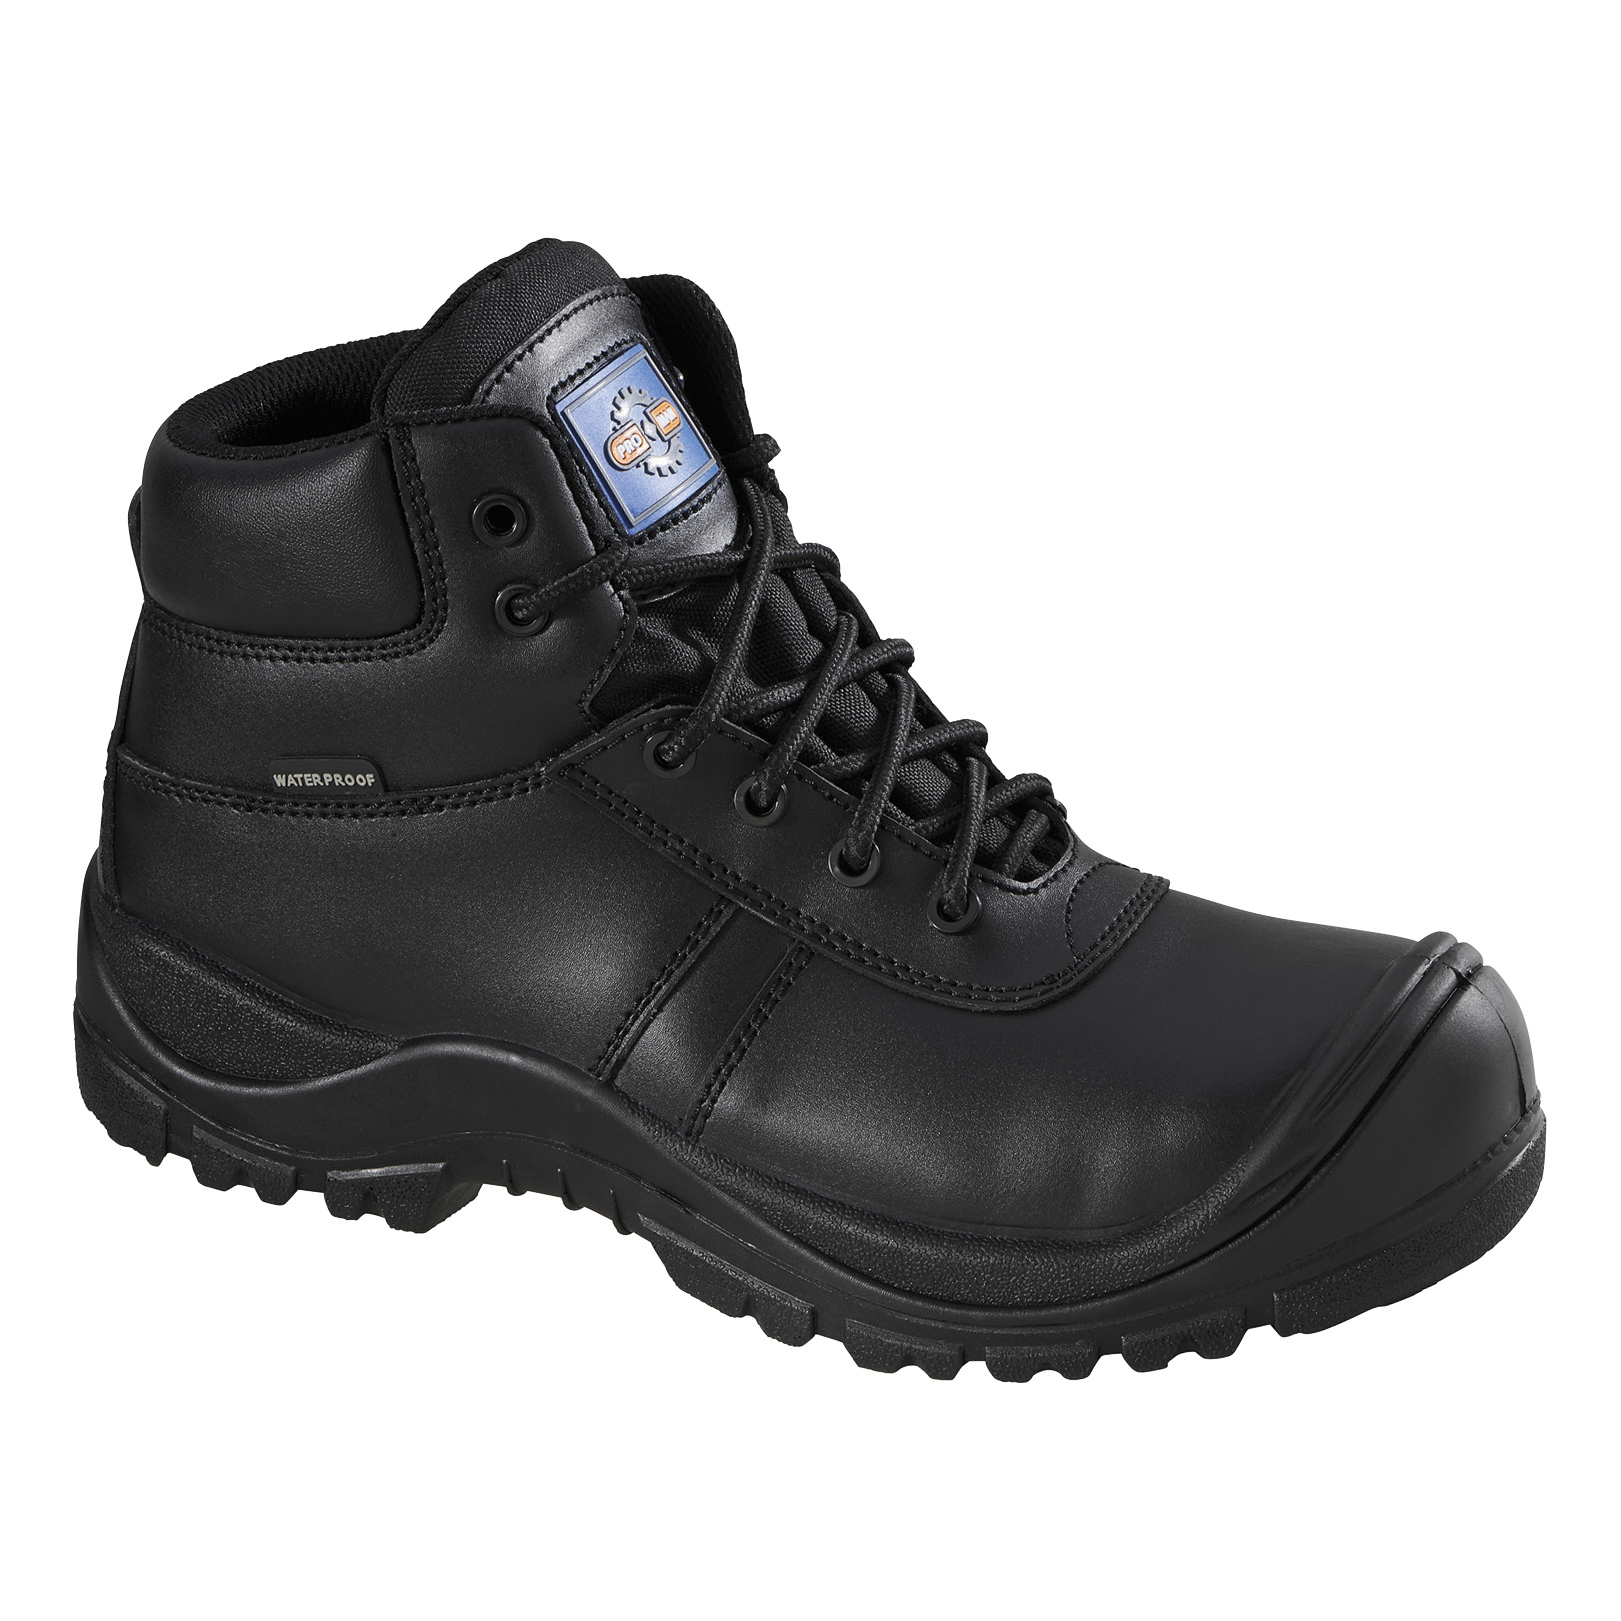 Rockfall Proman Boot Leather Waterproof 100% Non-Metallic Size 11 Black Ref PM4008-11 5-7 Day Leadtime